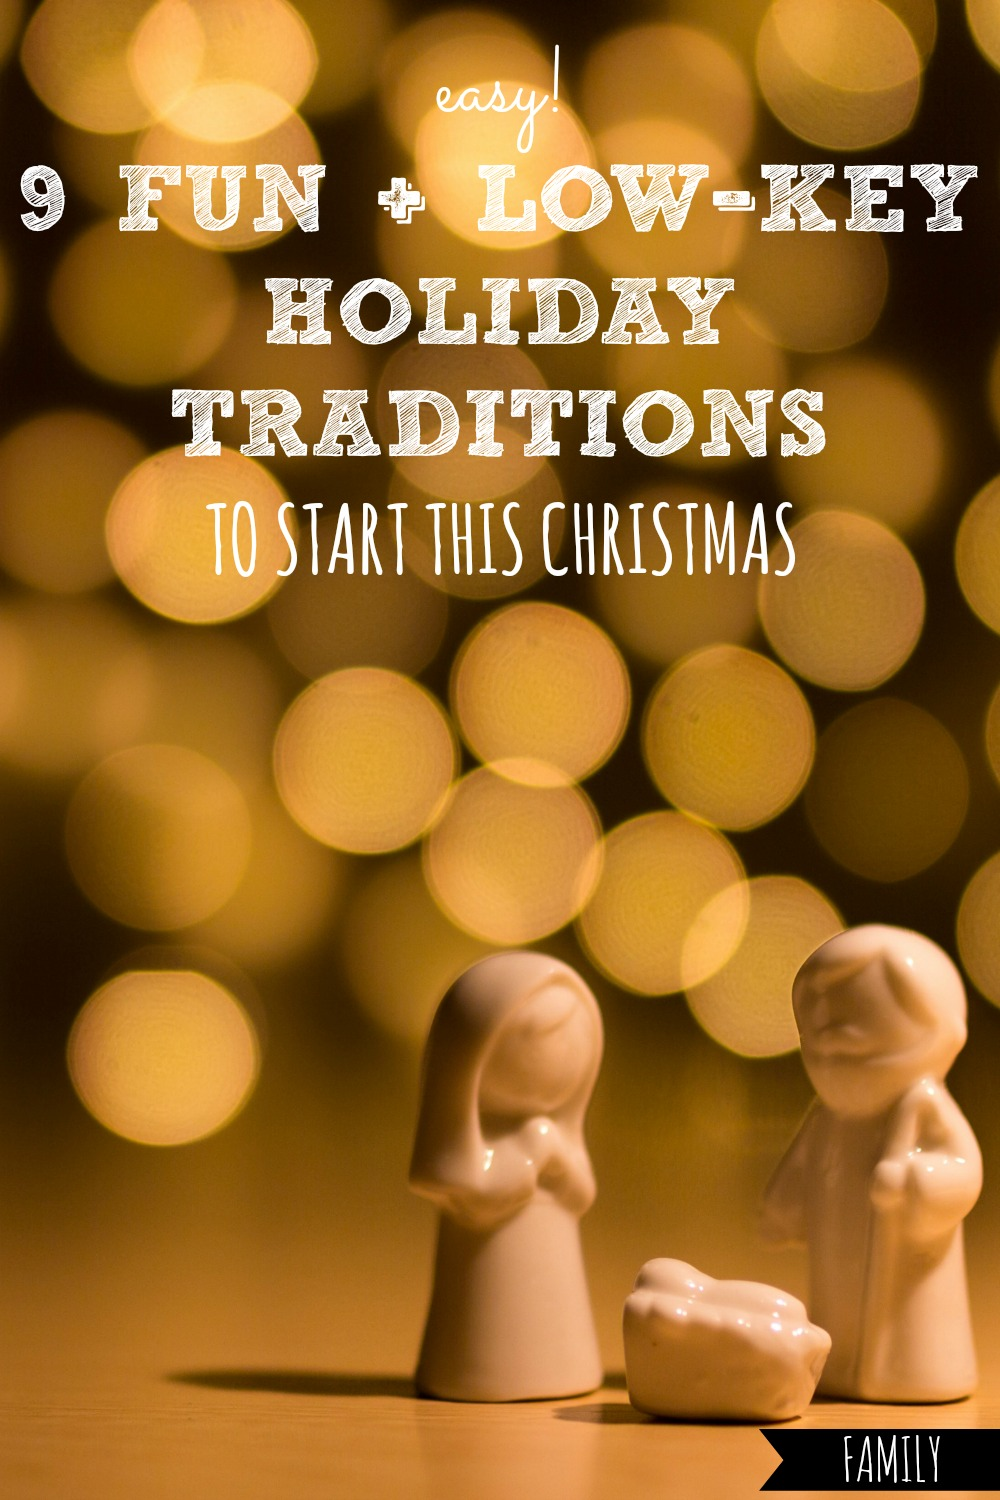 Want to start some fun Christmas holiday traditions, but don't want to add ONE more thing to your to-do list? Here are 9 fun traditions that require minimal effort! #holiday #holidays #tradition #traditions #Christmas #Christmastime #xmas #fun #easy #simple